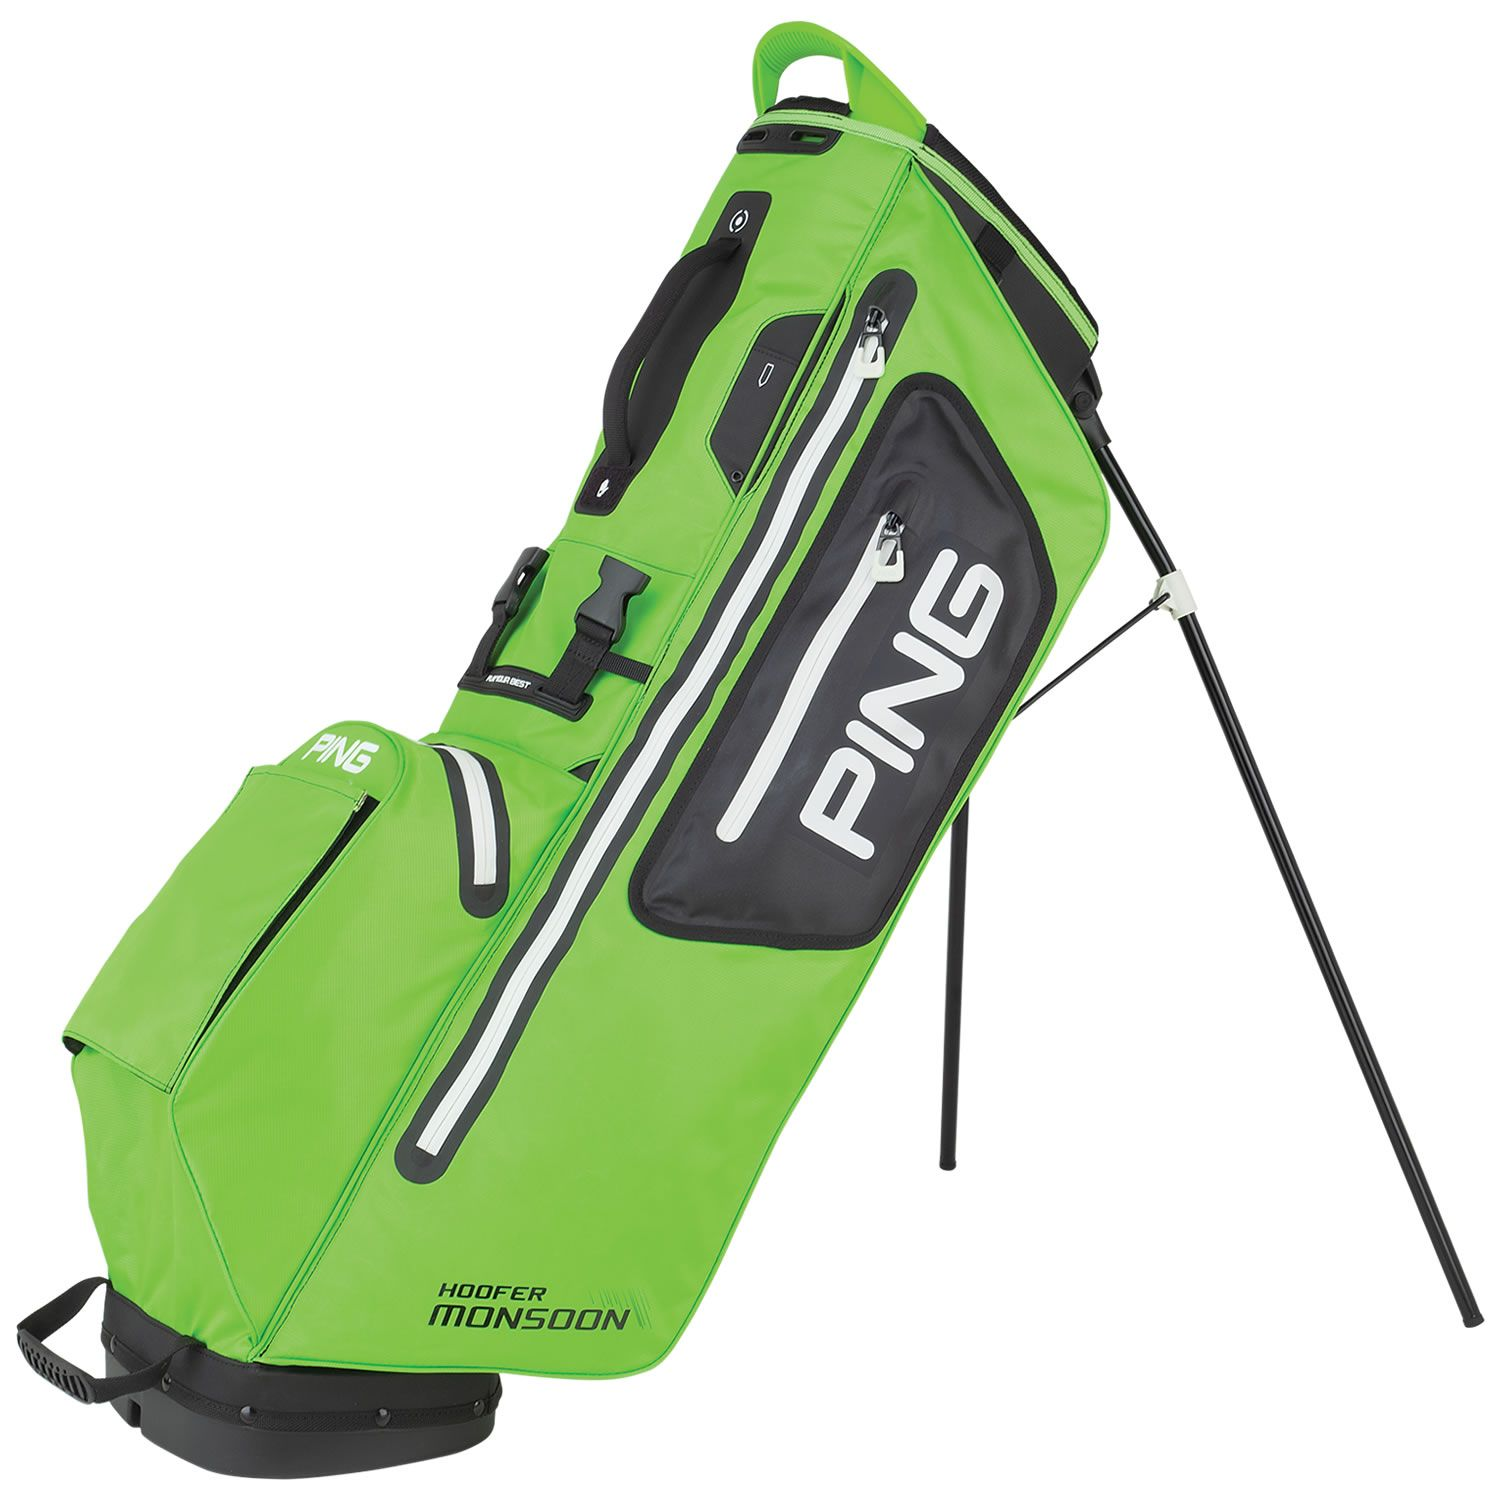 Ping 2020 Hoofer Monsoon Waterproof Golf Stand Bag